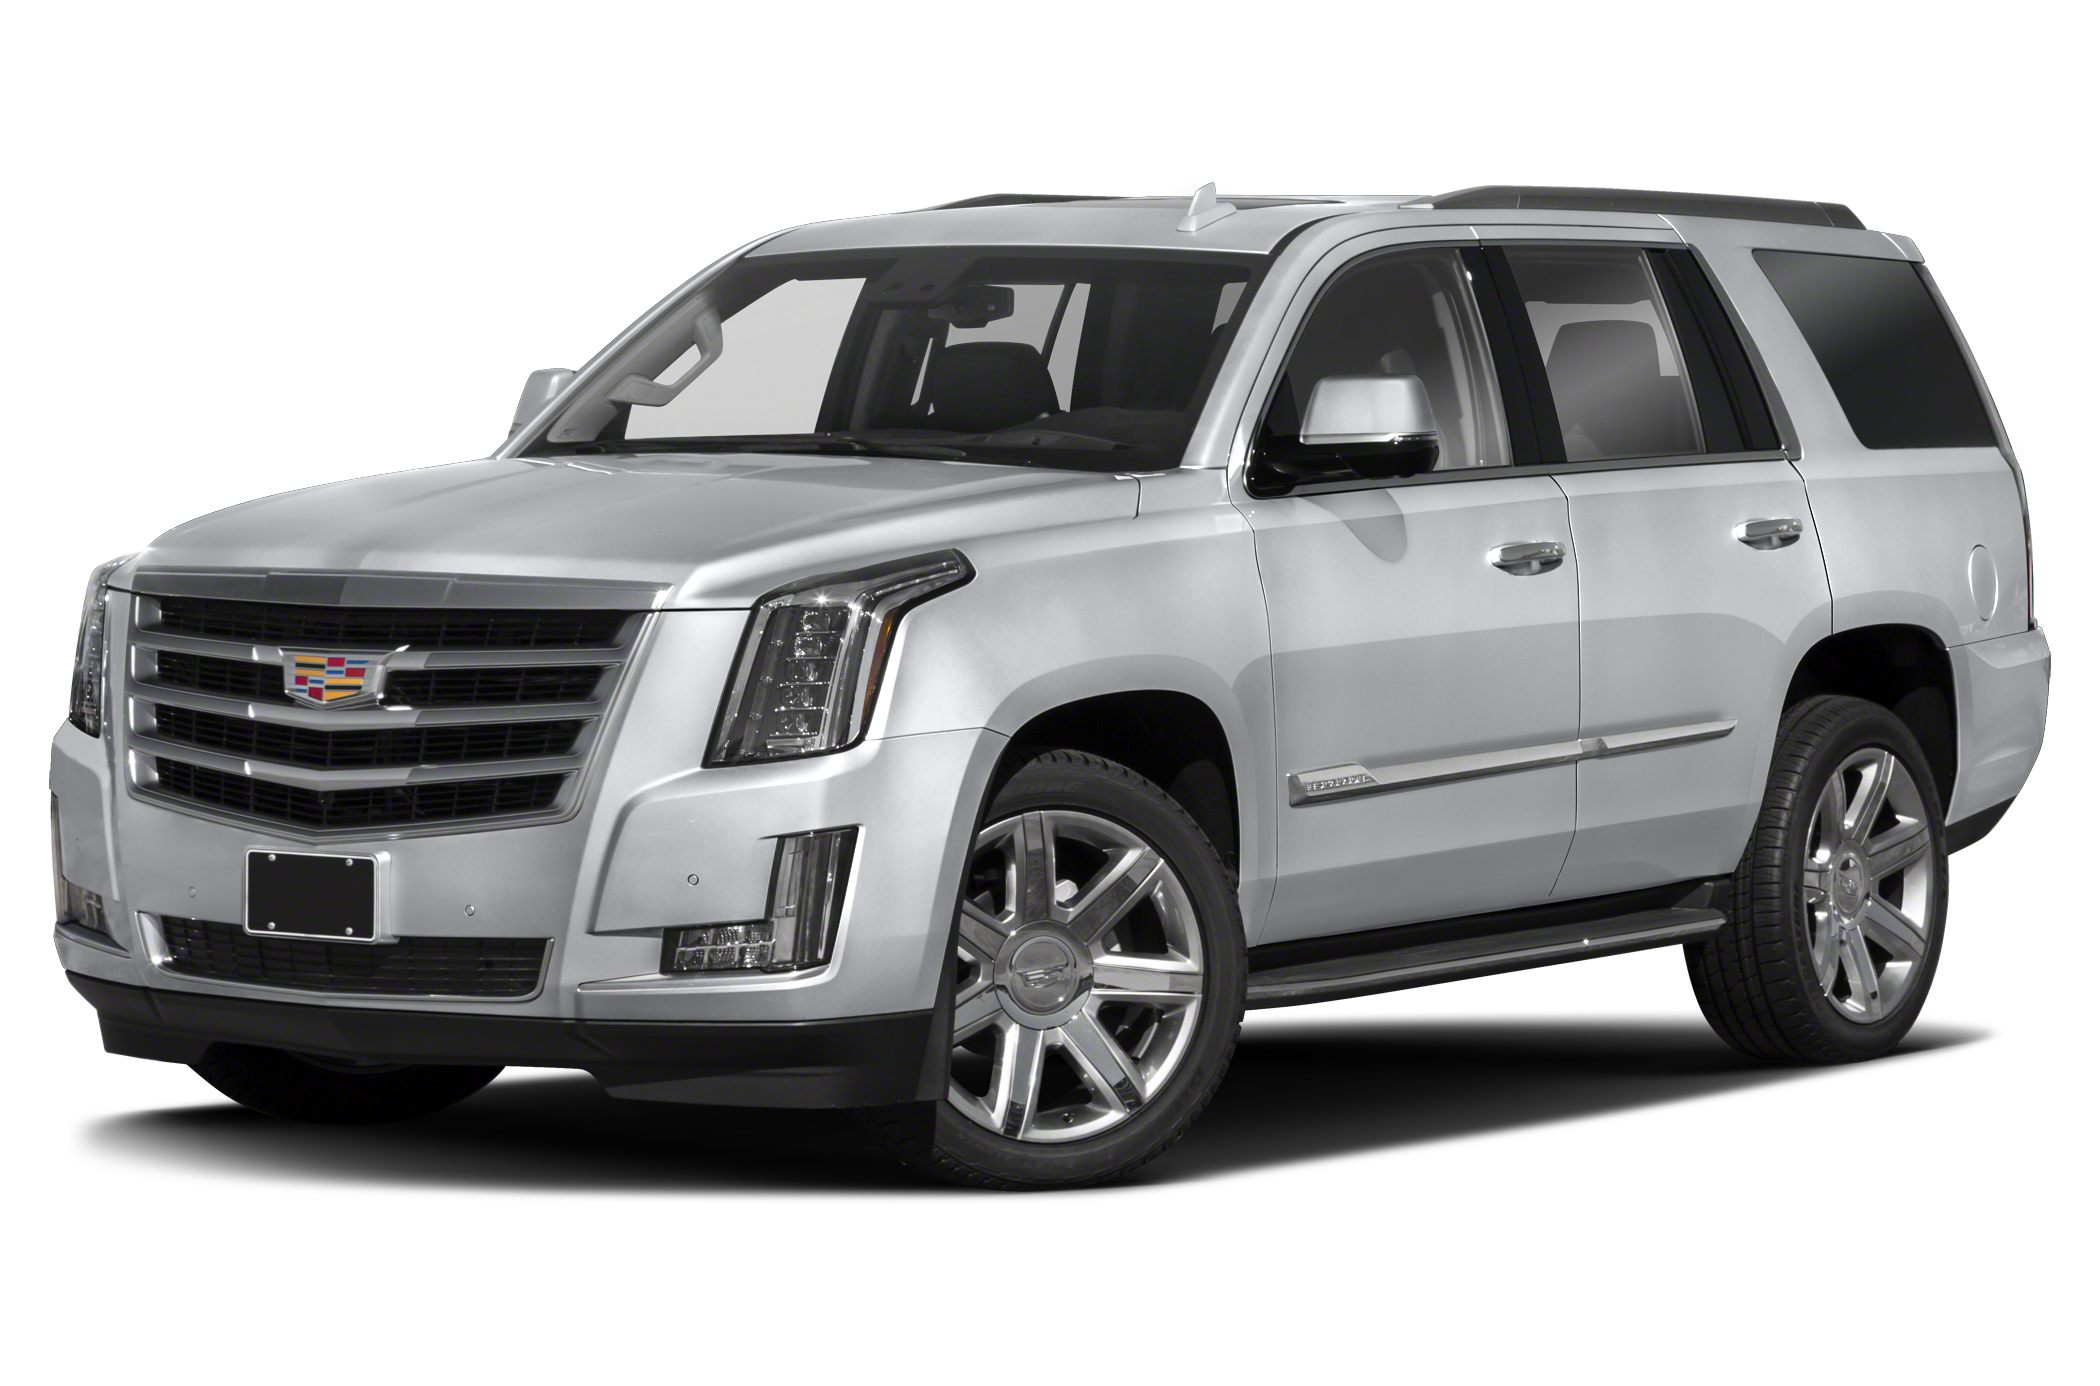 us cadillac en family platinum media escalade vehicles